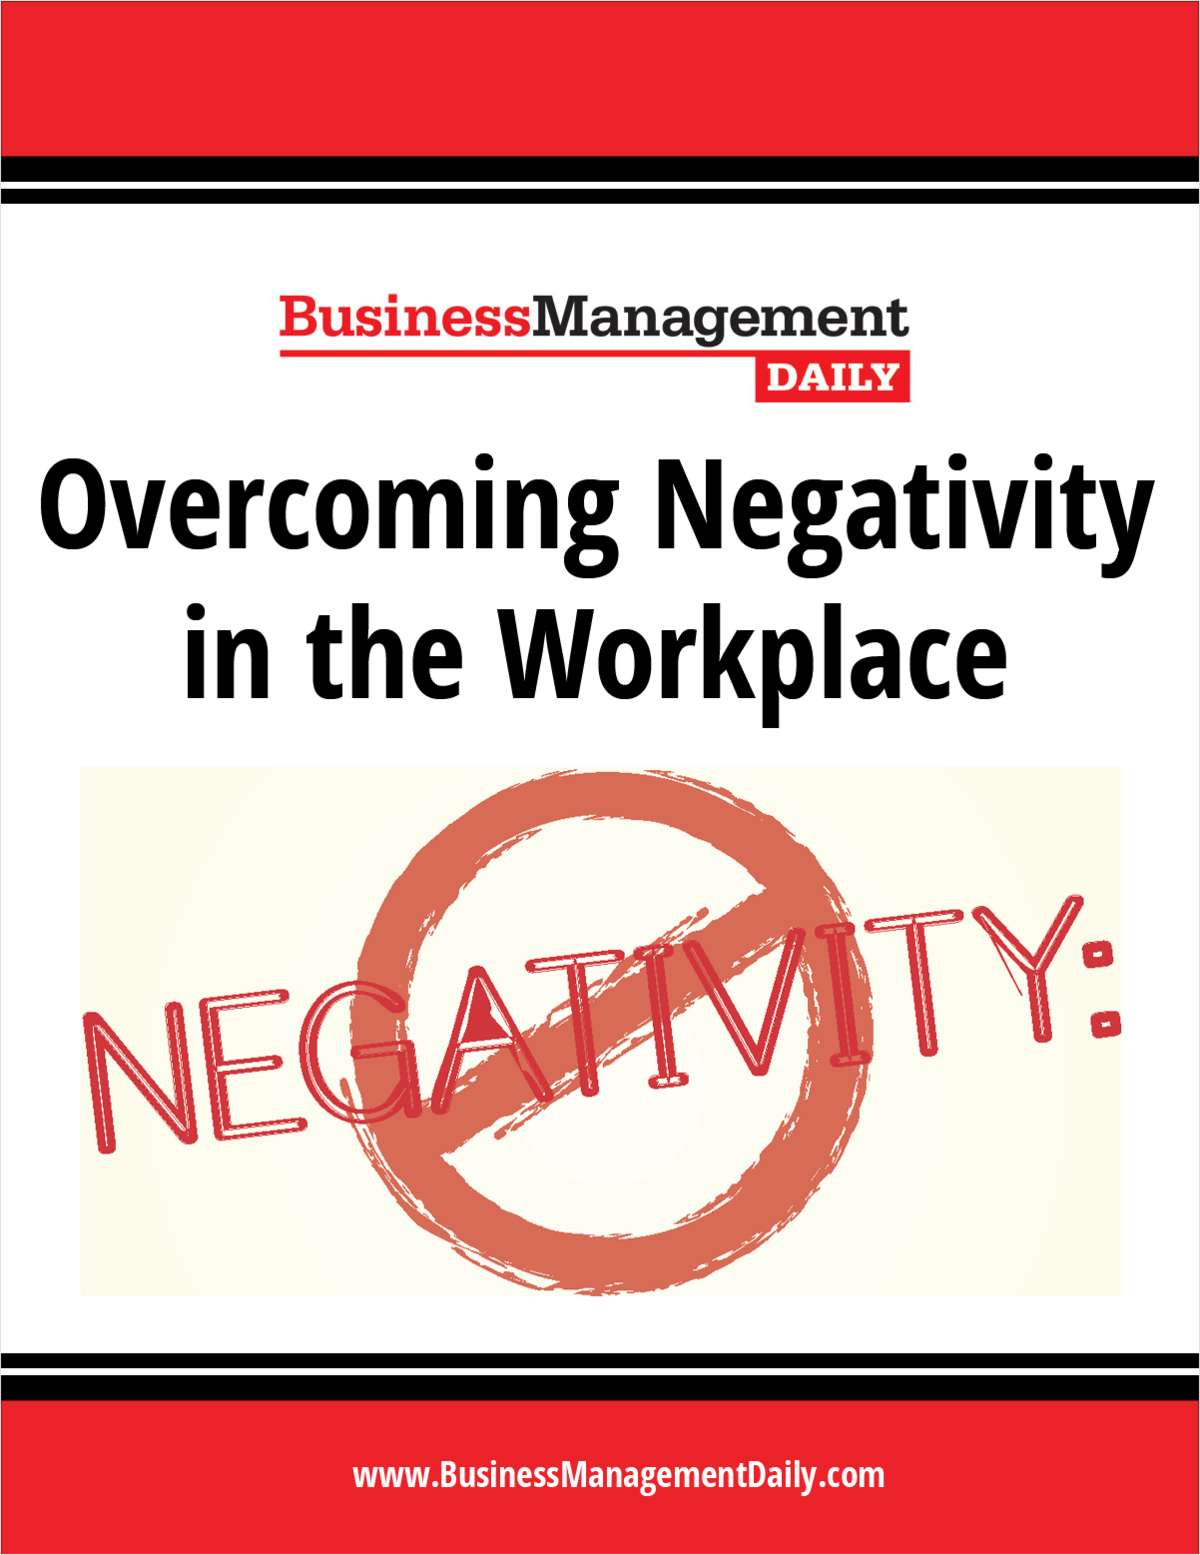 Overcoming Negativity in the Workplace